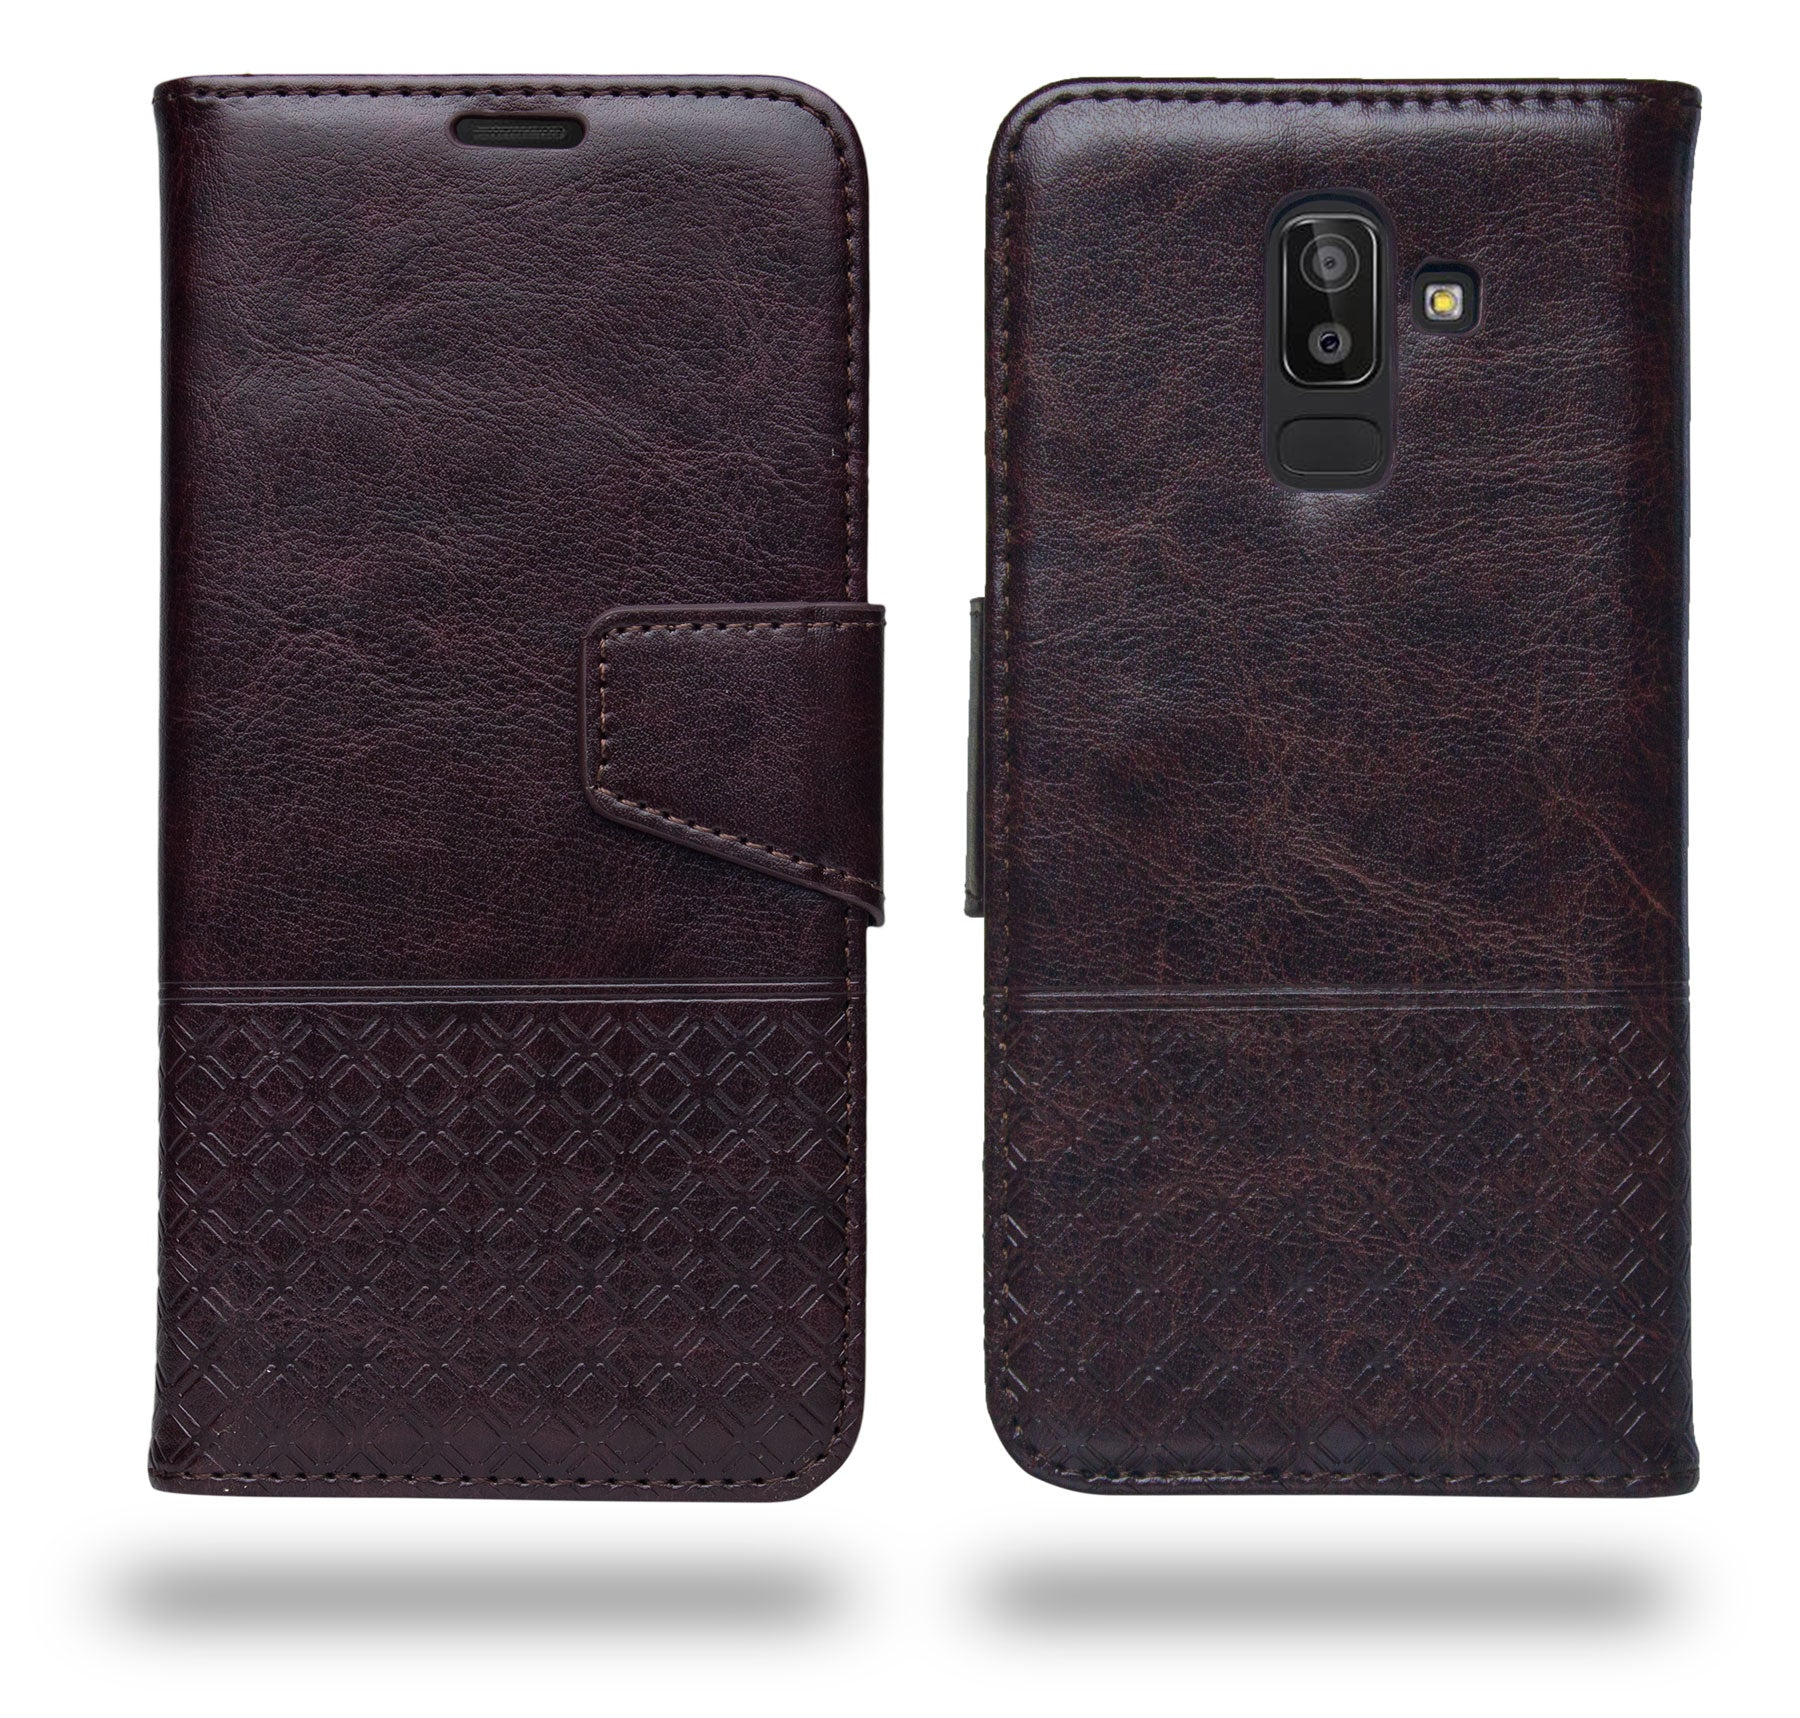 Ceego Luxuria Compact Wallet Flip Cover for Samsung Galaxy On8 (Chestnut Brown)